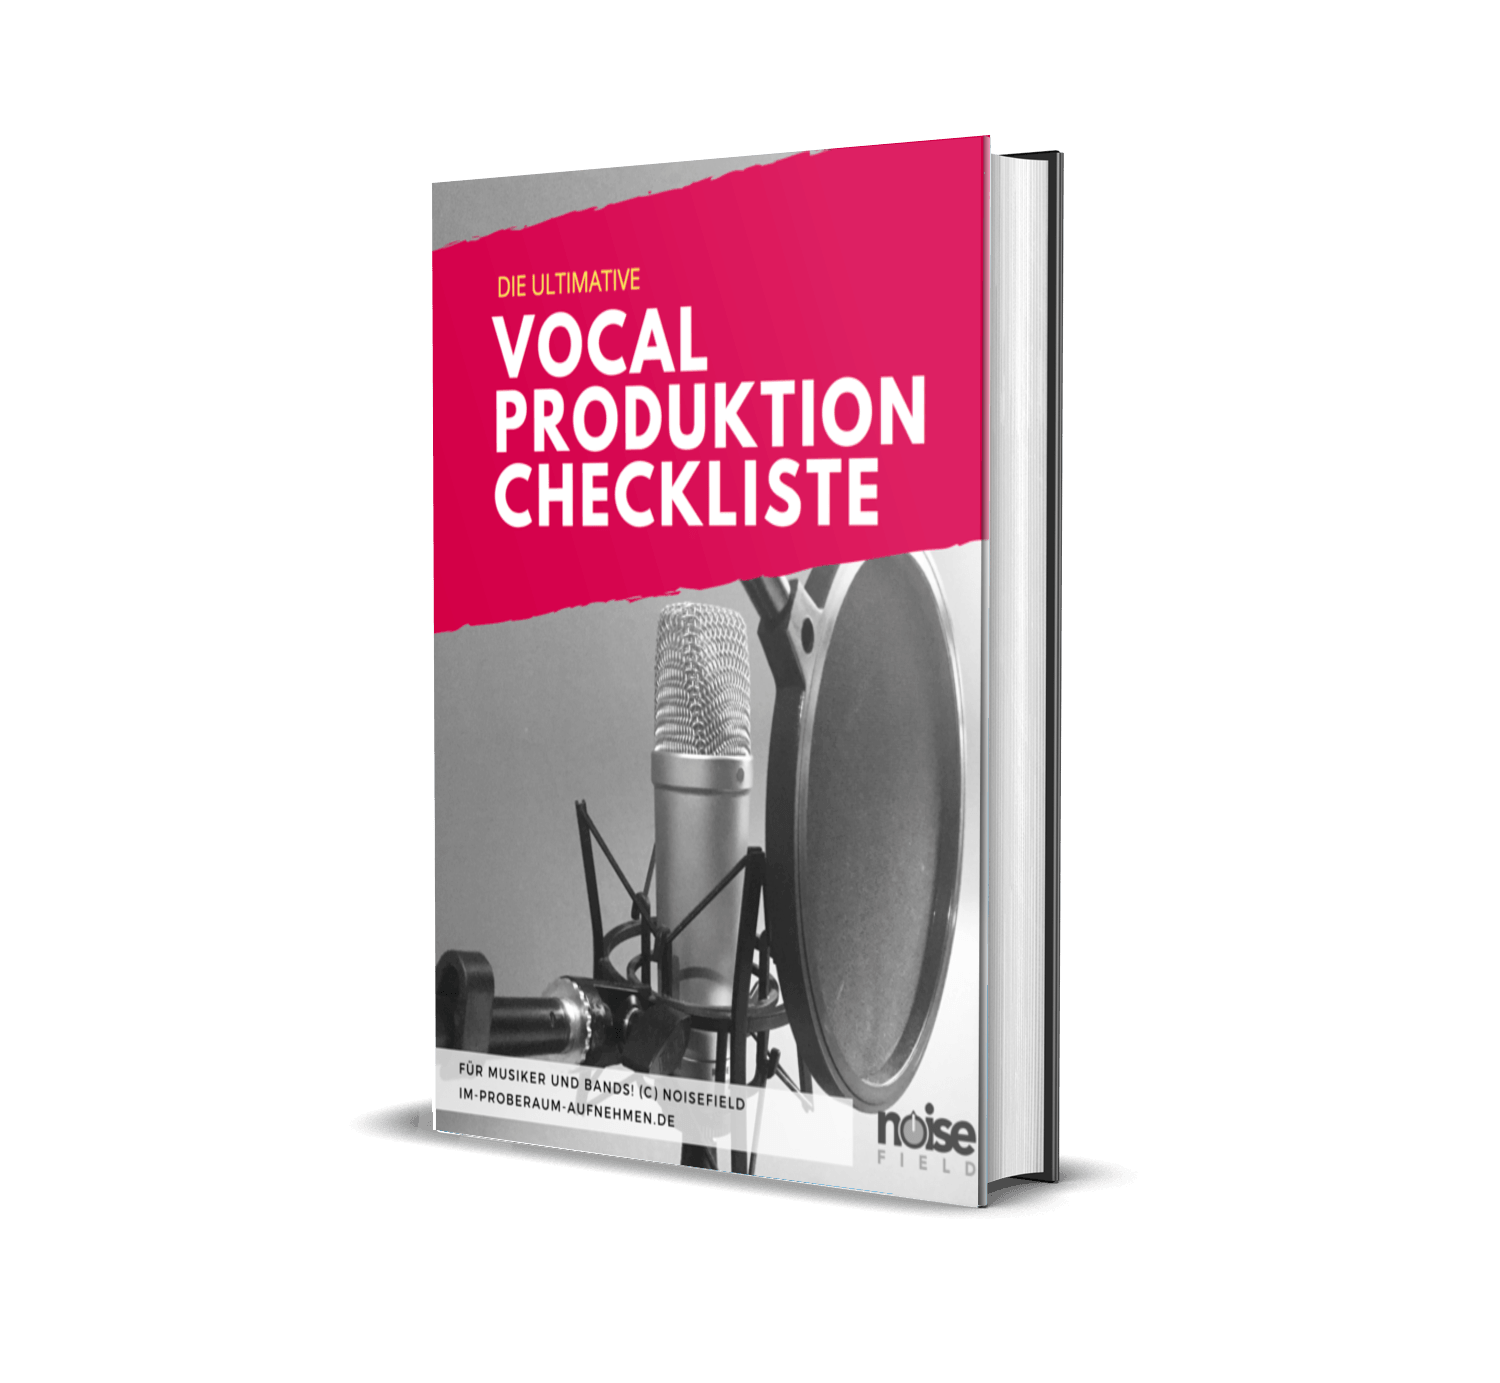 Vocal Checkliste